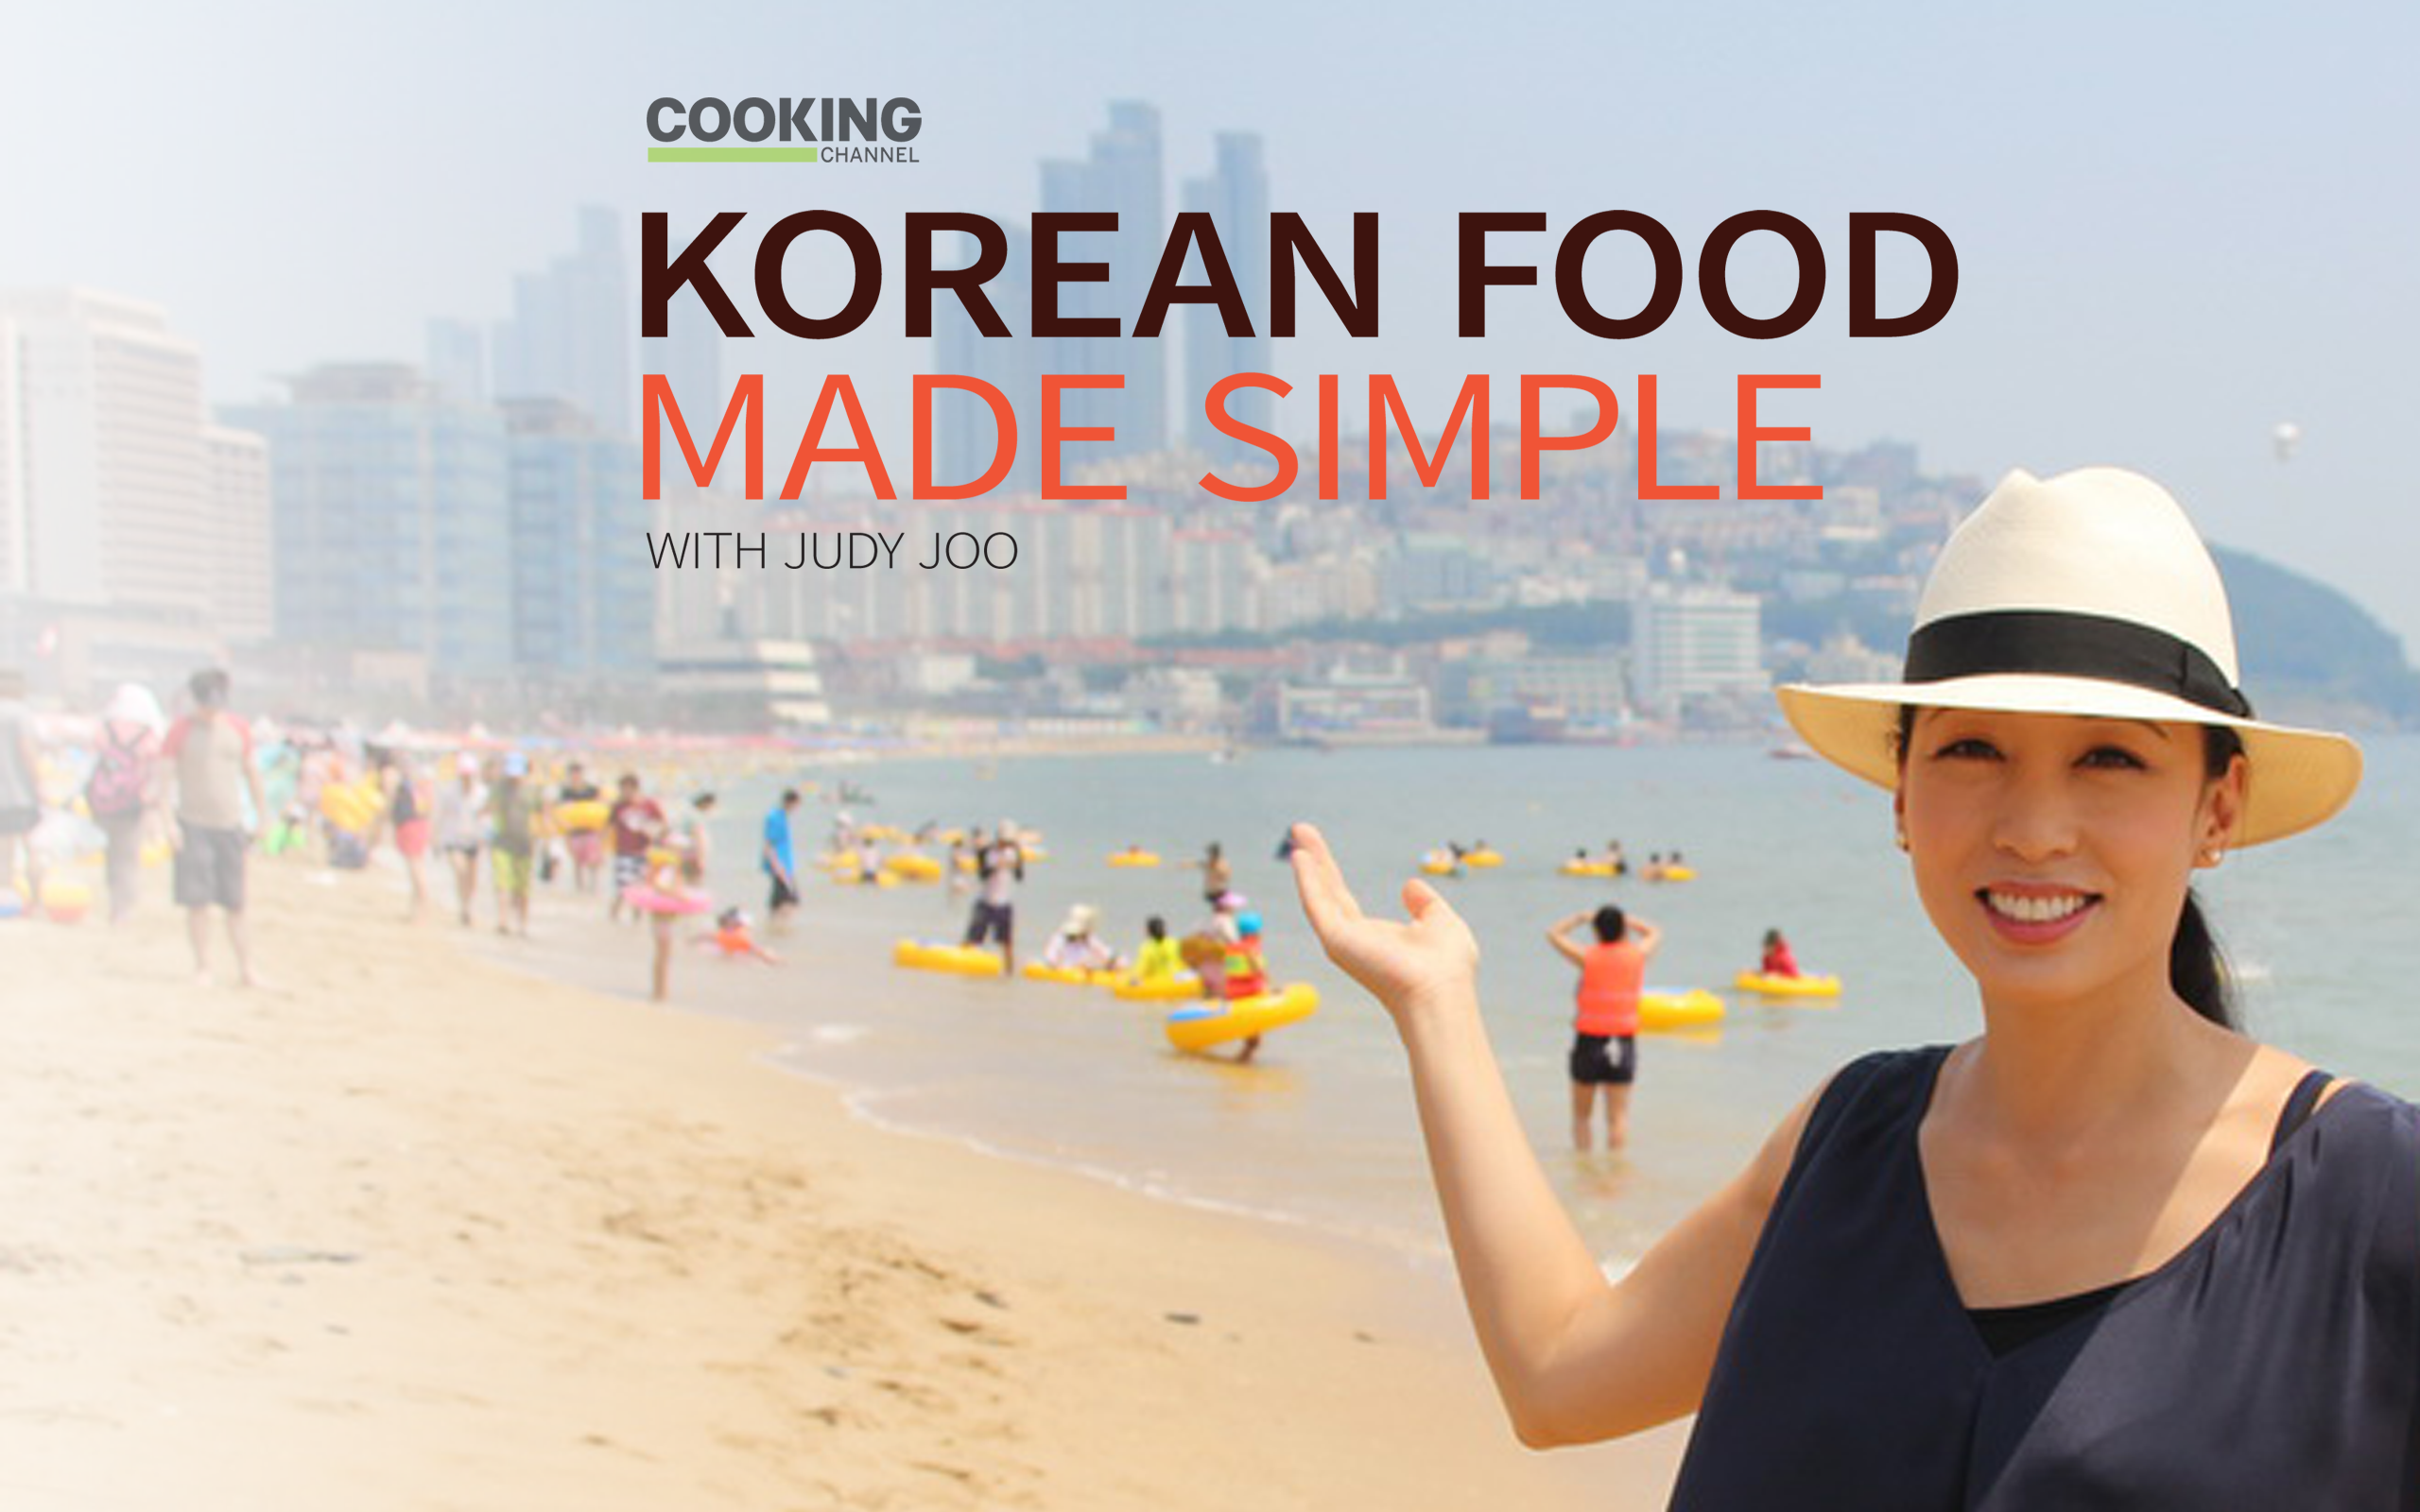 Korean food made simple on the cooking channel judy joo korean food made simple on the cooking channel judy joo forumfinder Image collections